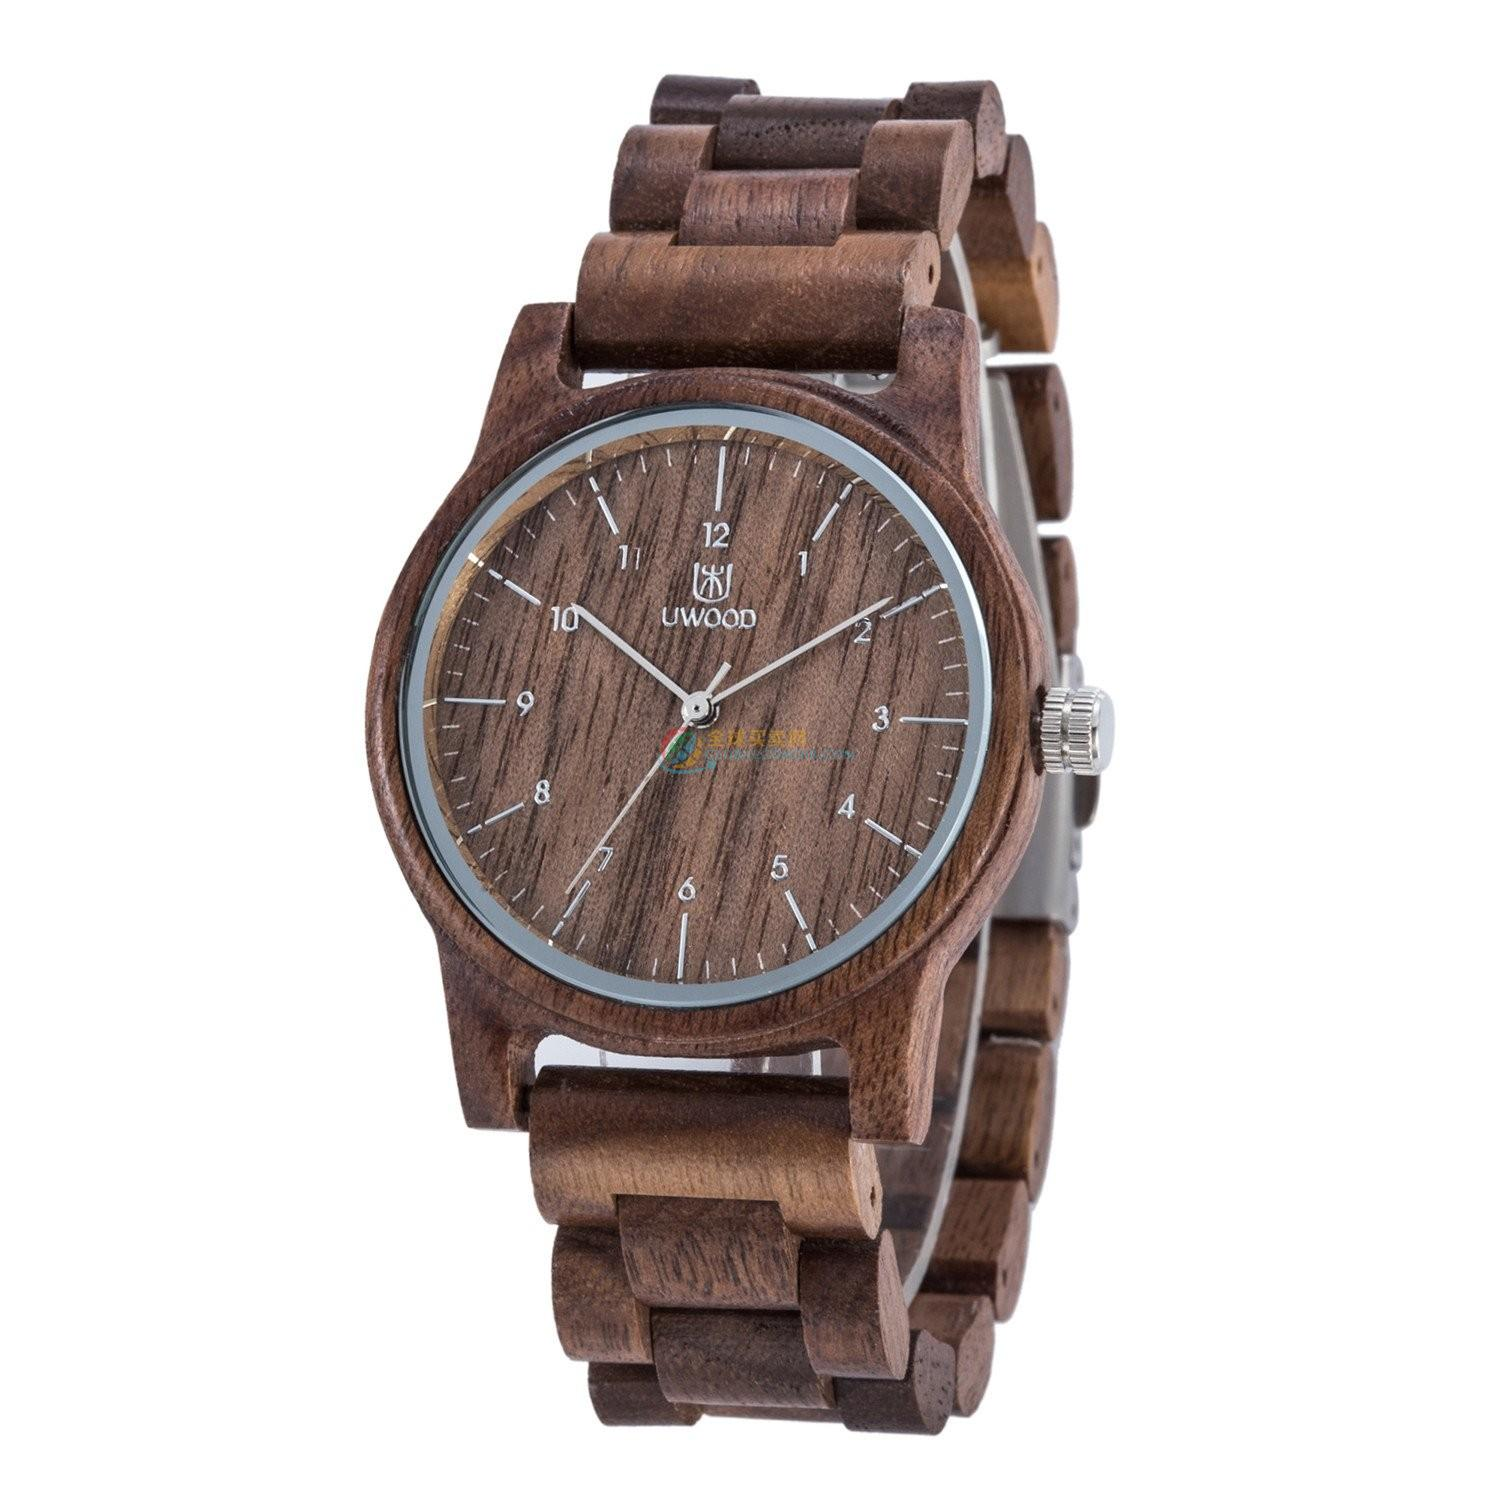 WoodWatch011 Tan Walnut Wood Watch for Men